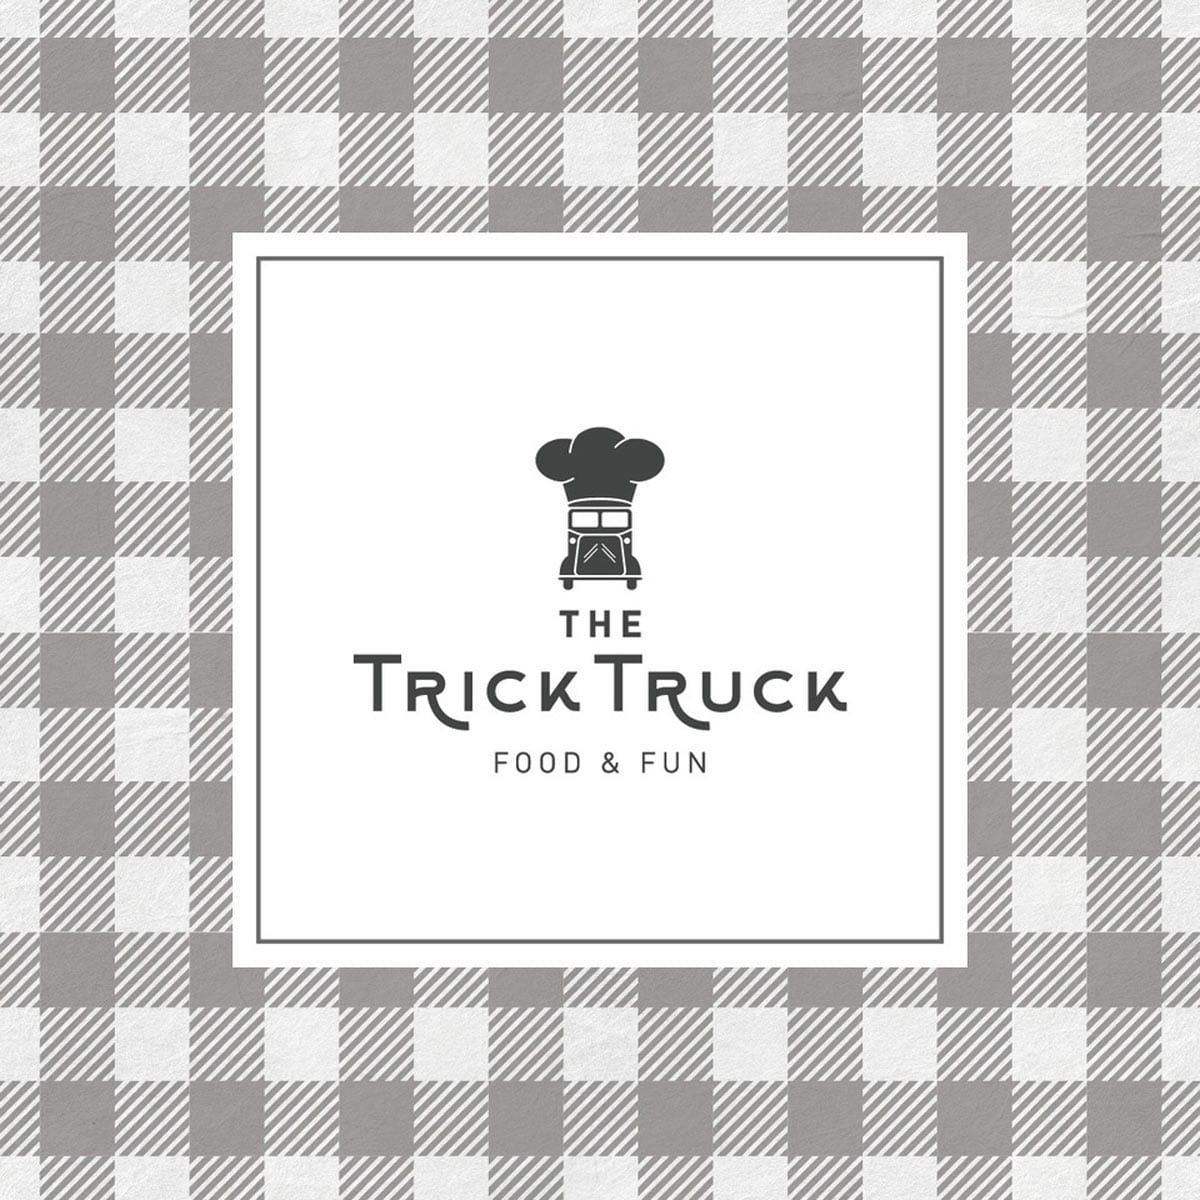 the trick truck, food and fun, diseño de logo